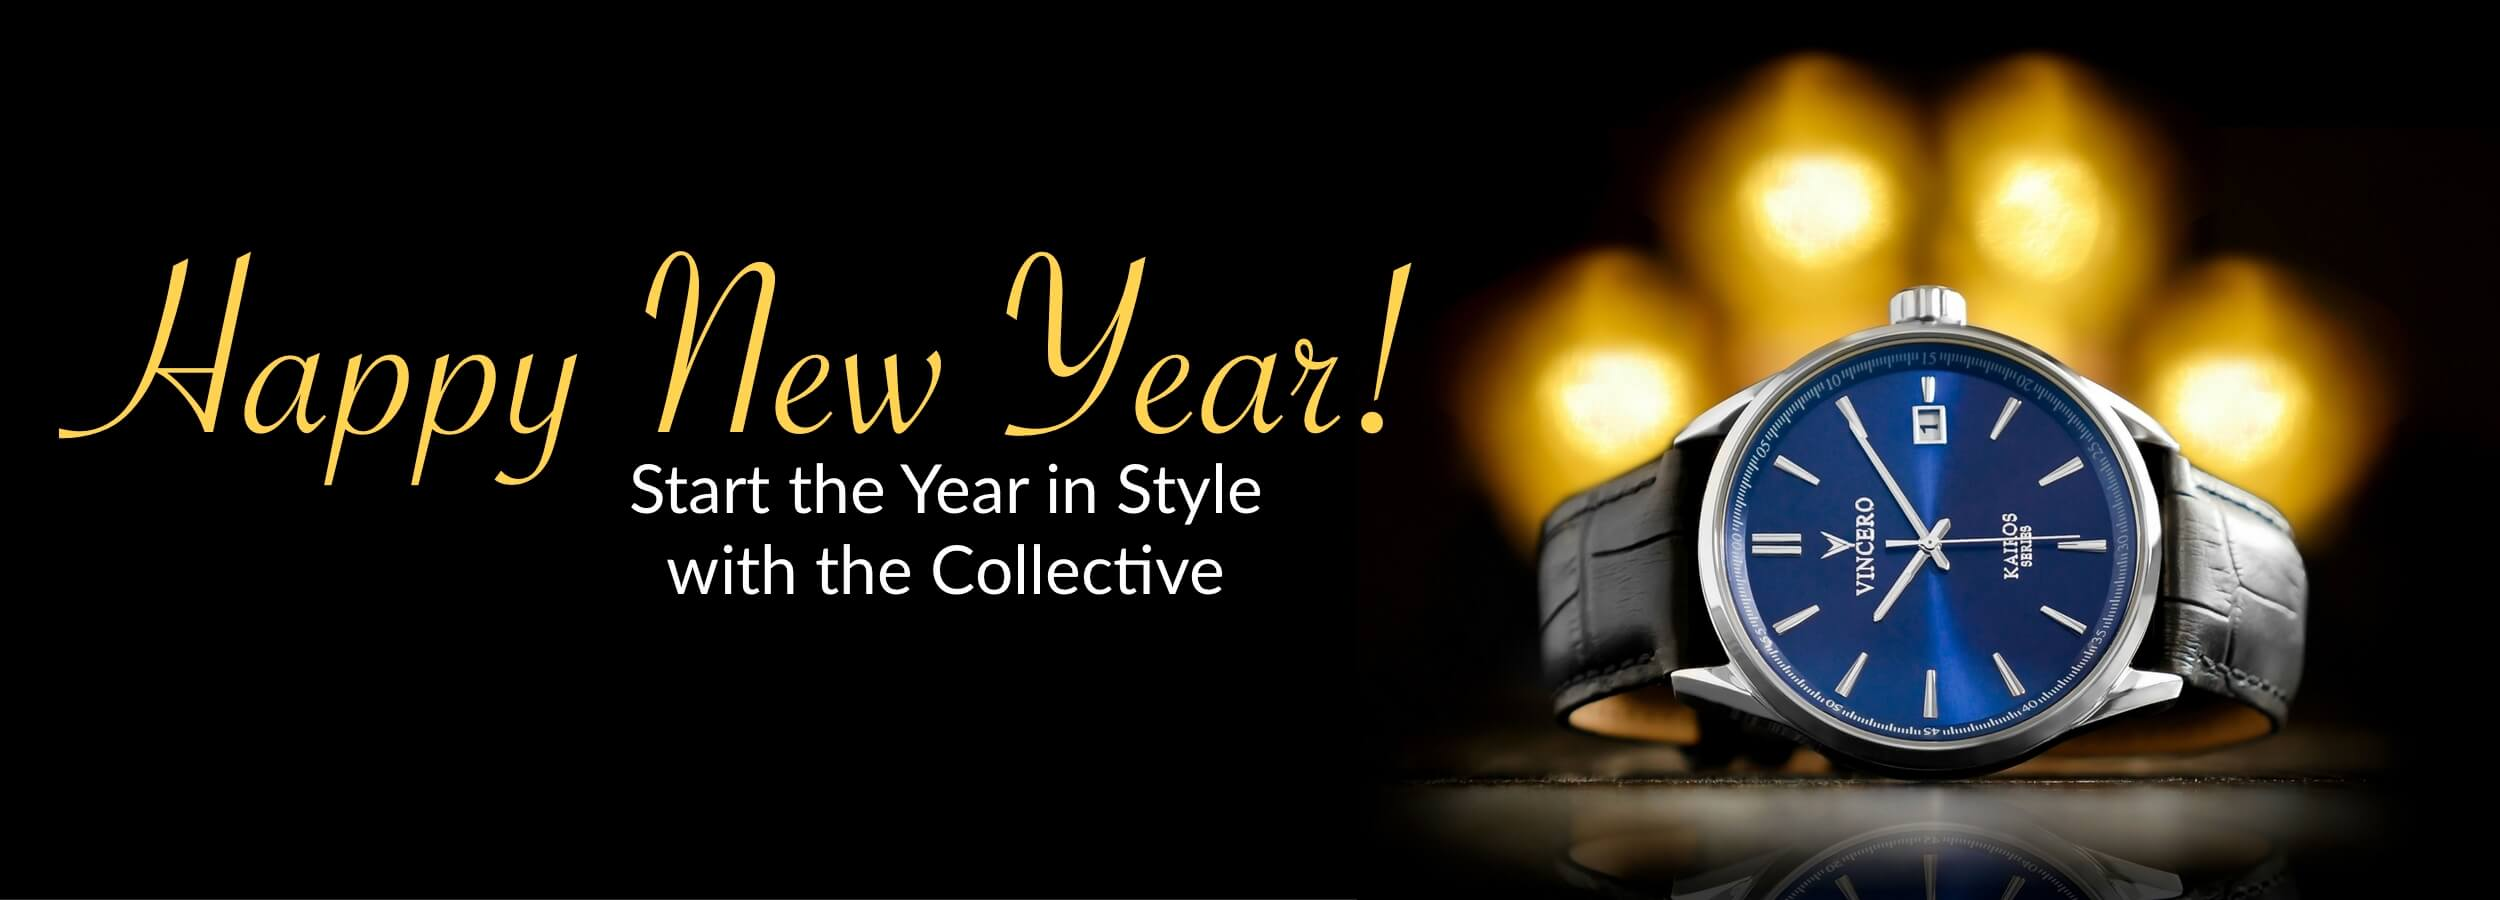 Happy New Year from the Collective!